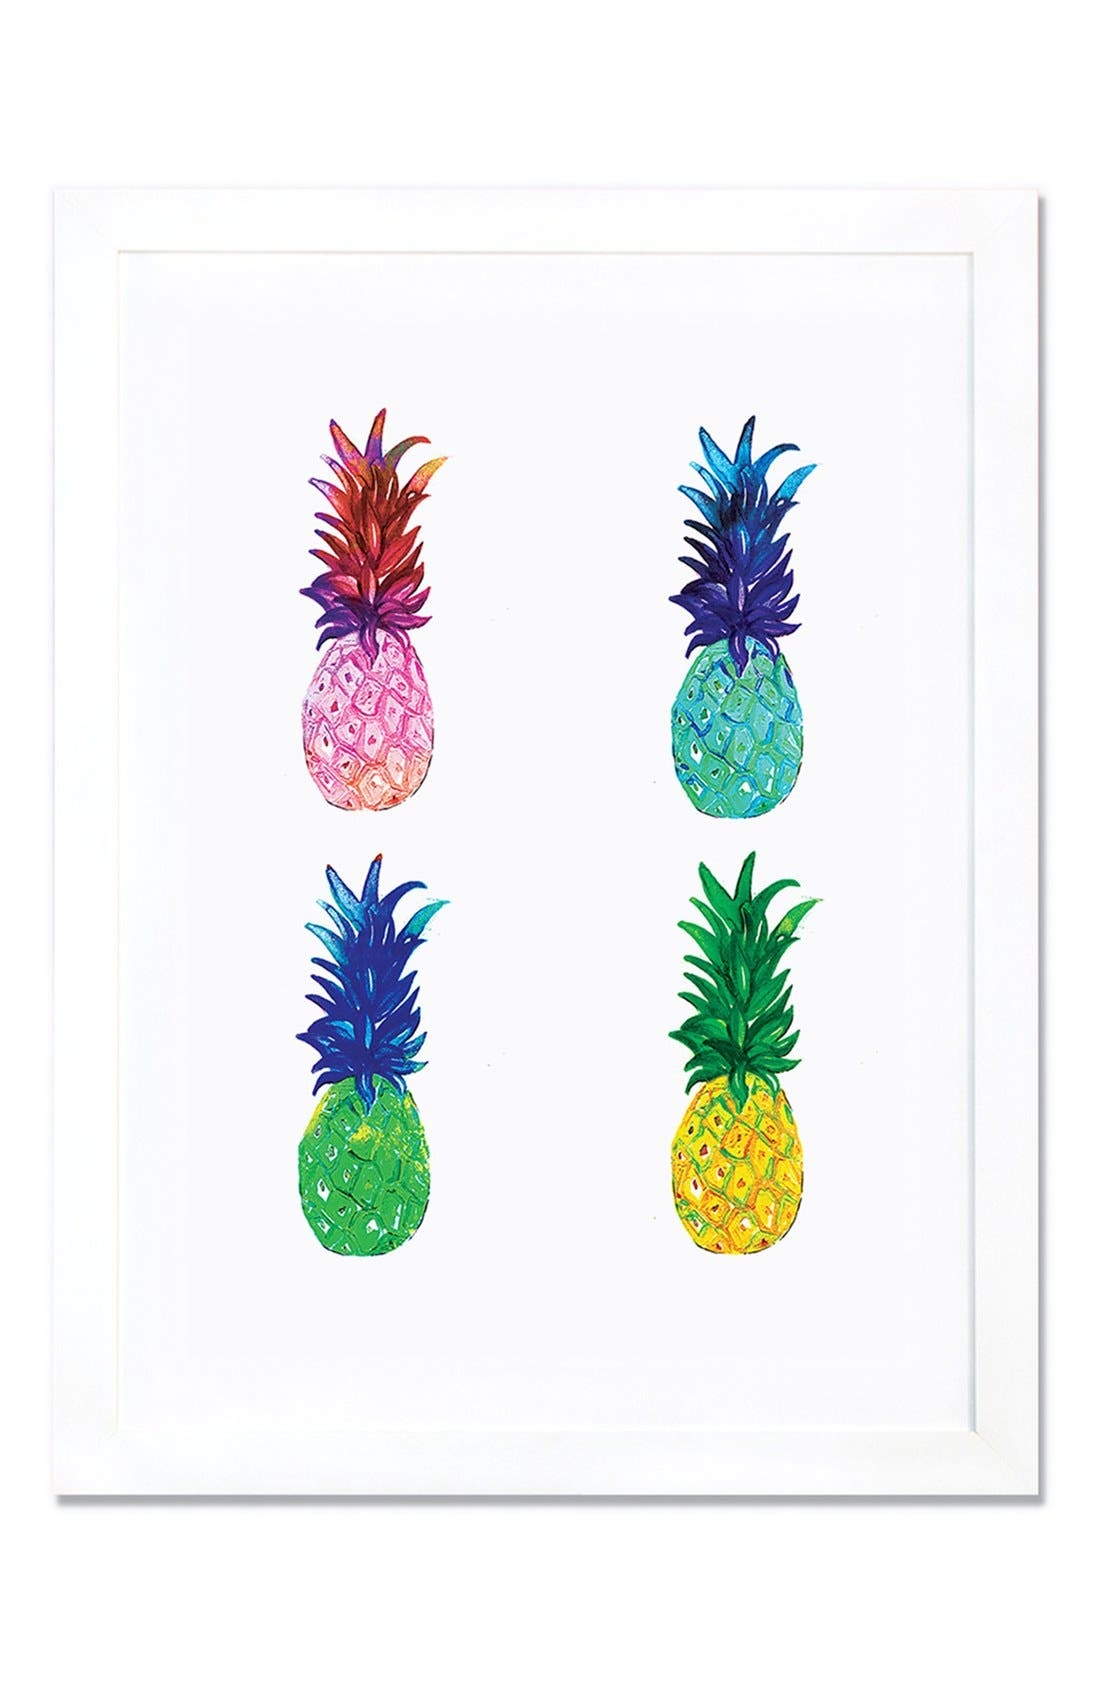 'Pineapple' Giclée Print Framed Canvas Art,                             Main thumbnail 1, color,                             WHITE